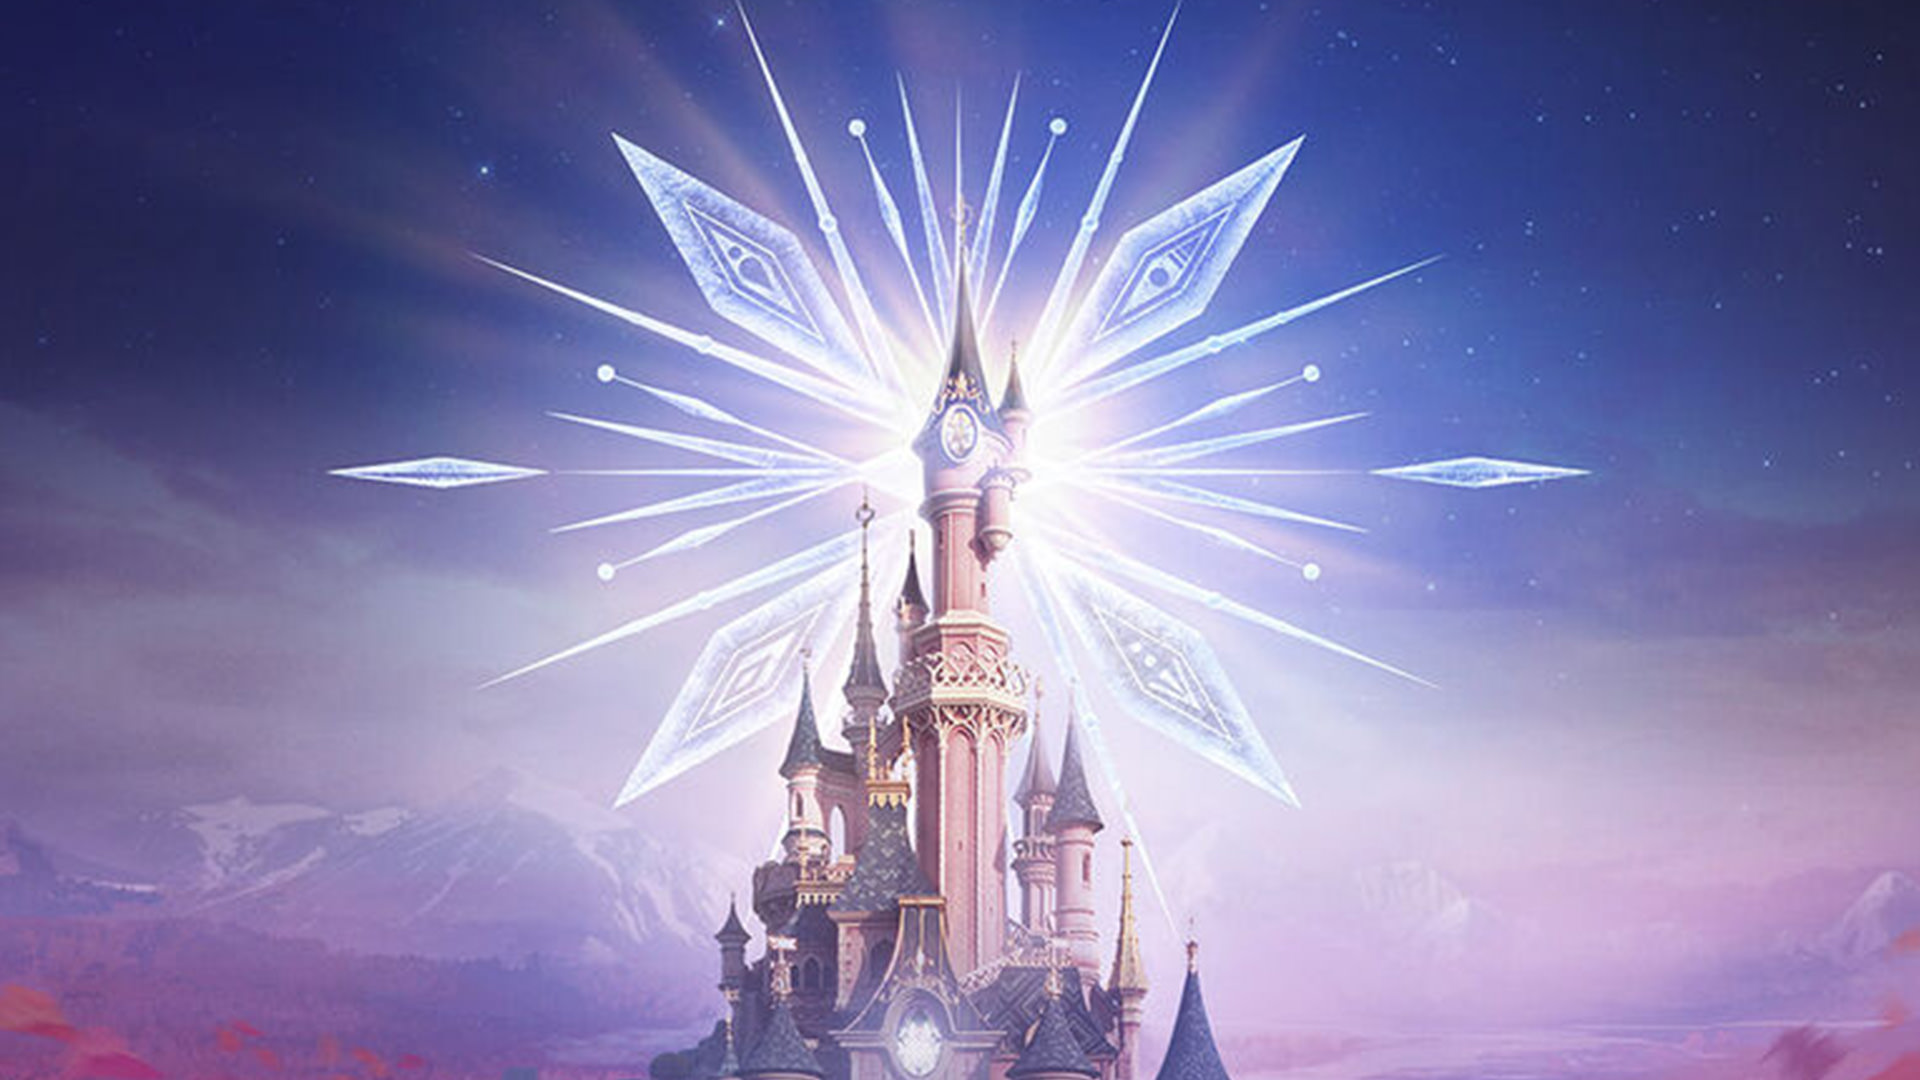 saison-reine-des-neiges-disneyland-paris-8